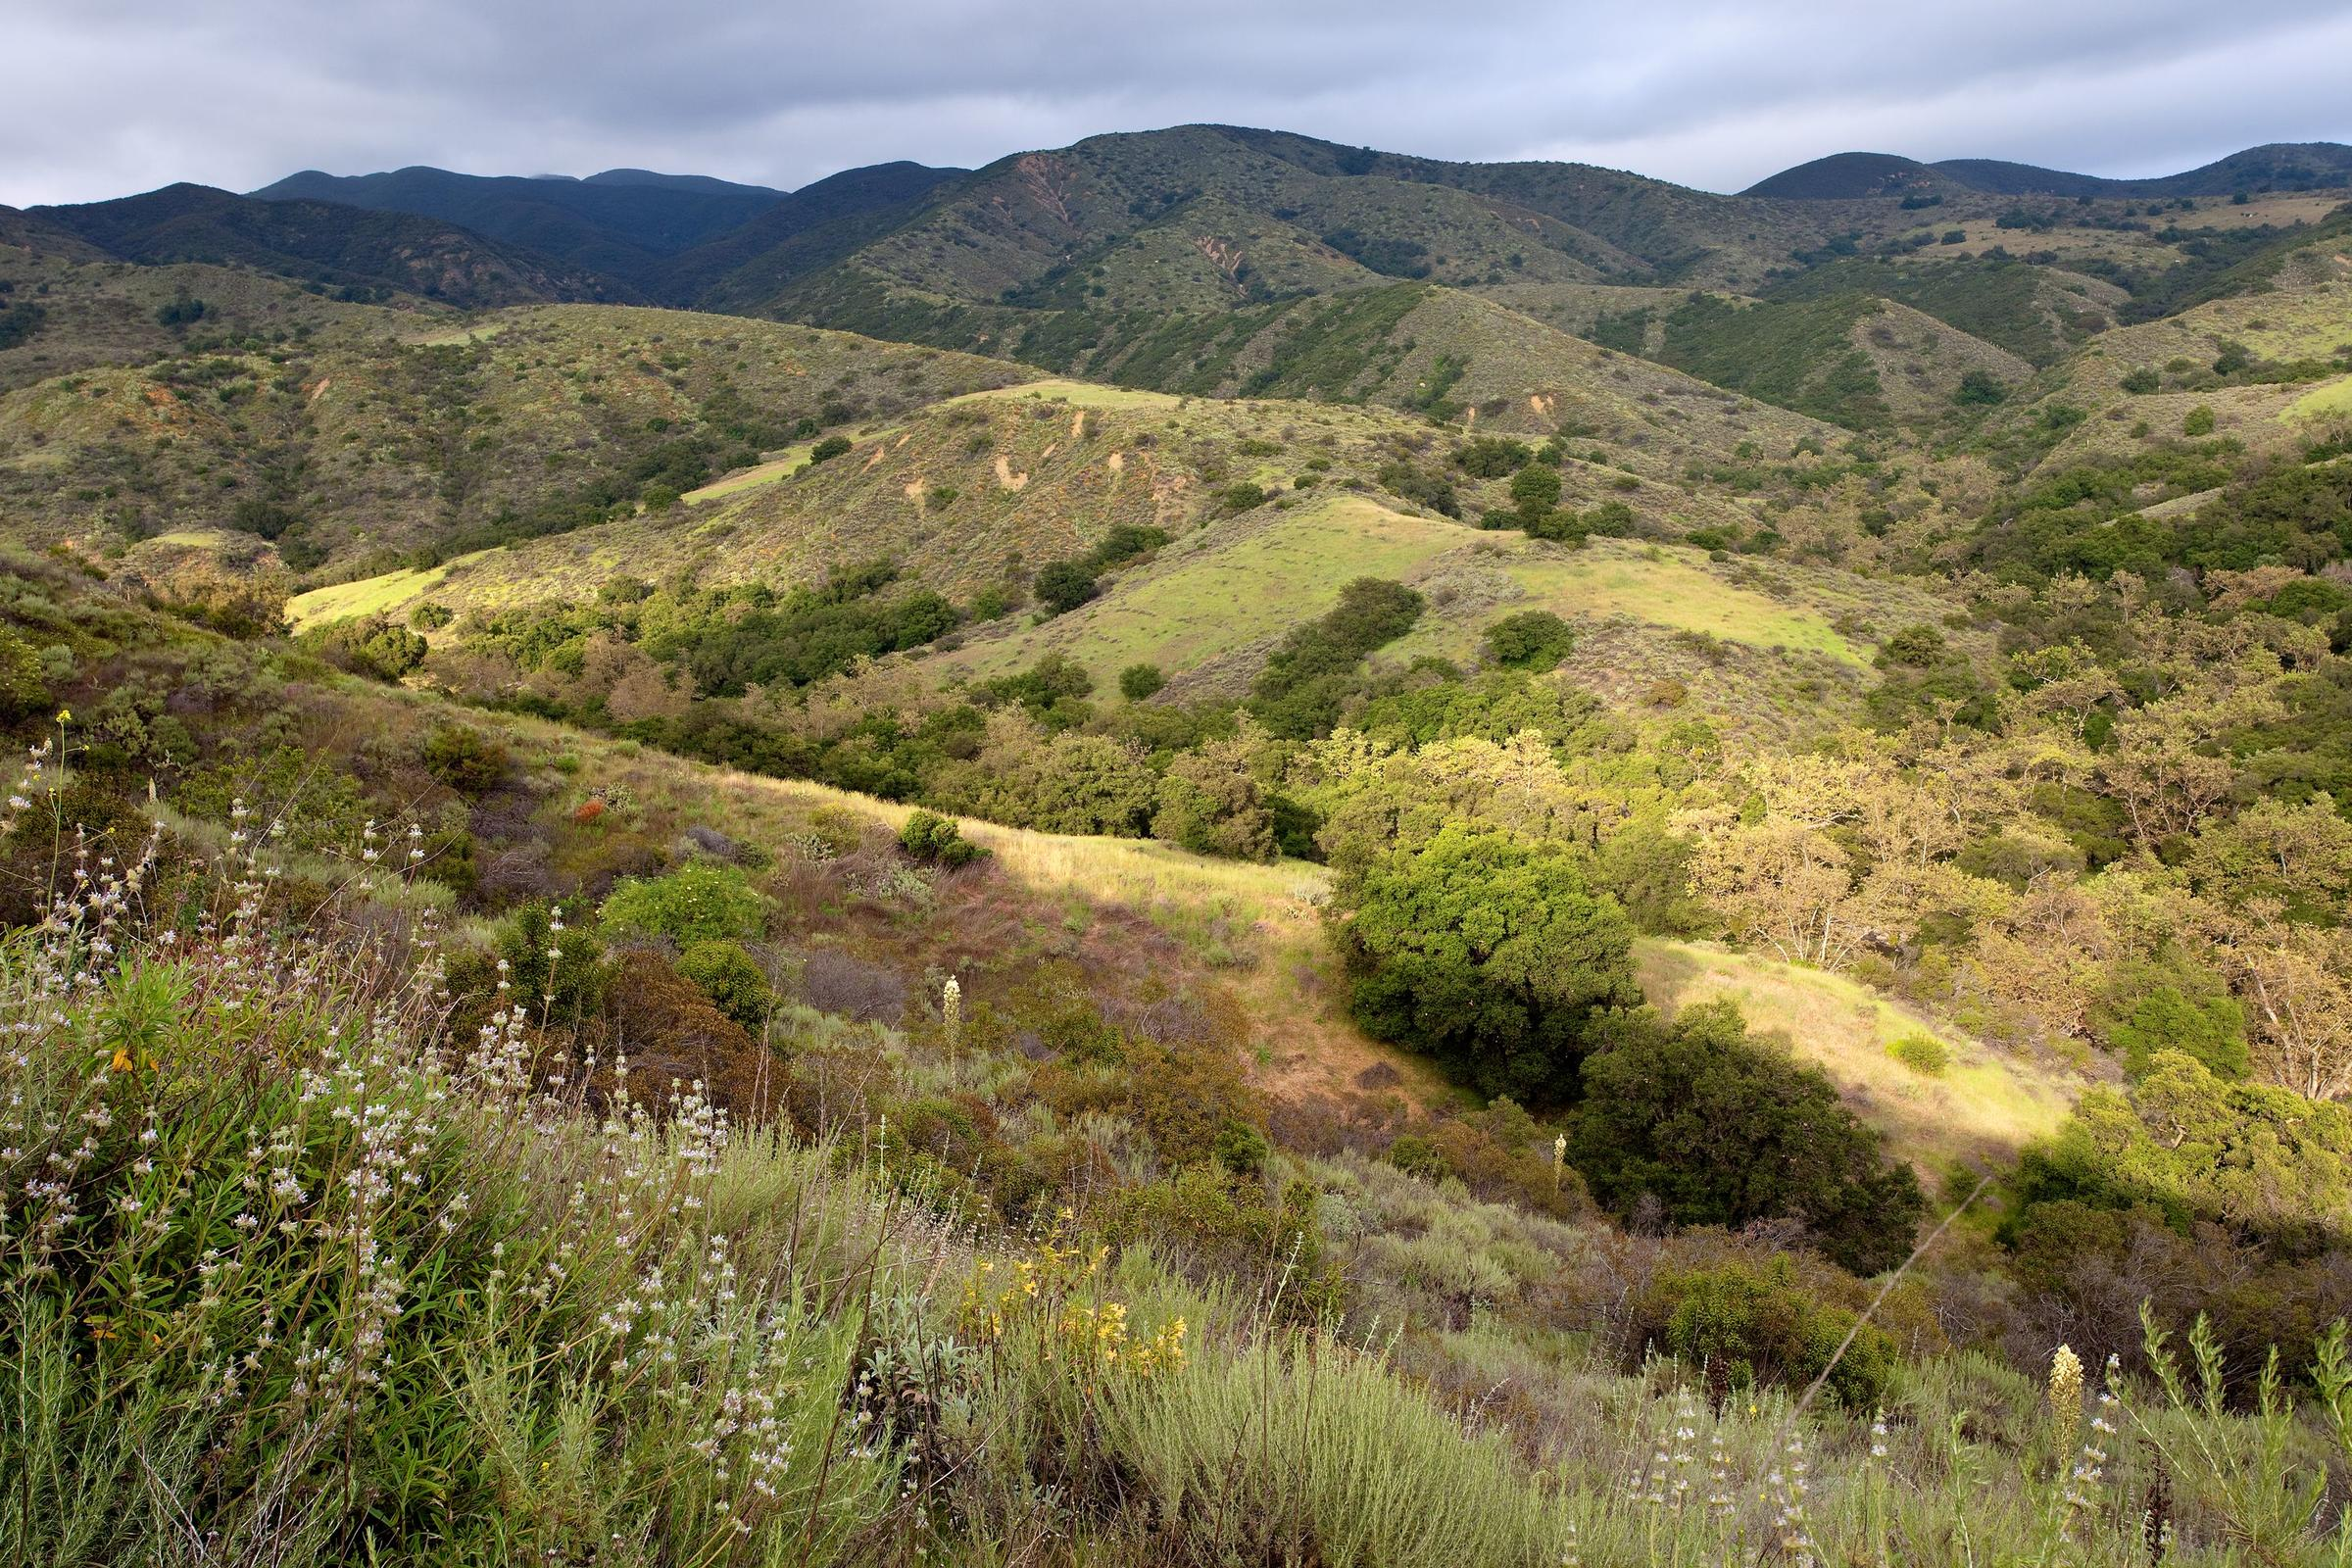 The Audubon Starr Ranch is an amazing example of wild Southern California.